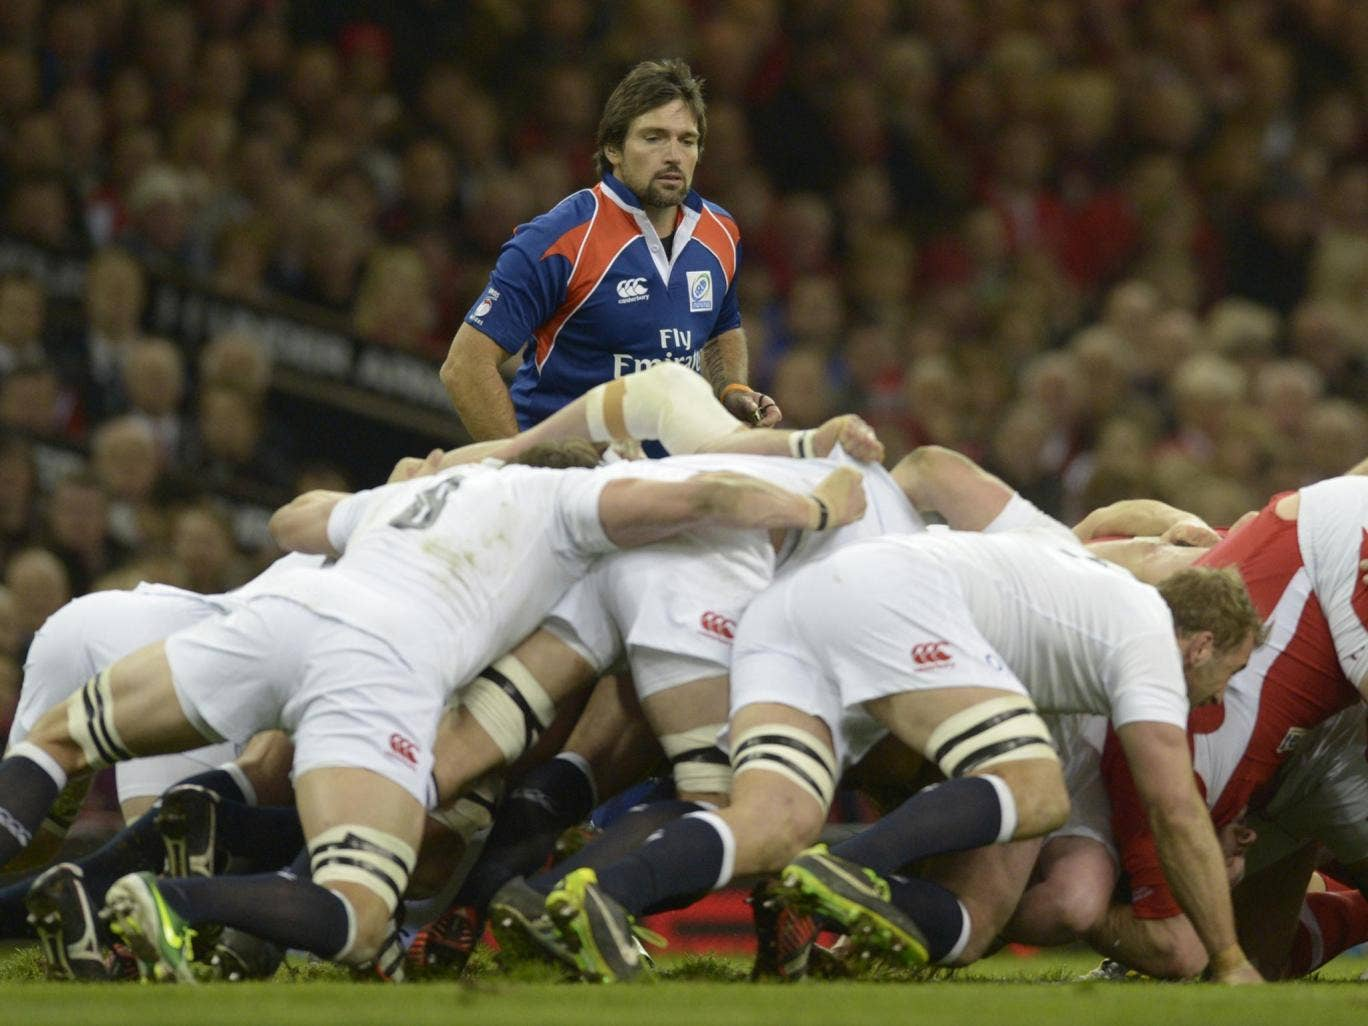 Steve Walsh came in for criticism after last year's meeting between England and Wales in Cardiff, which the hosts won